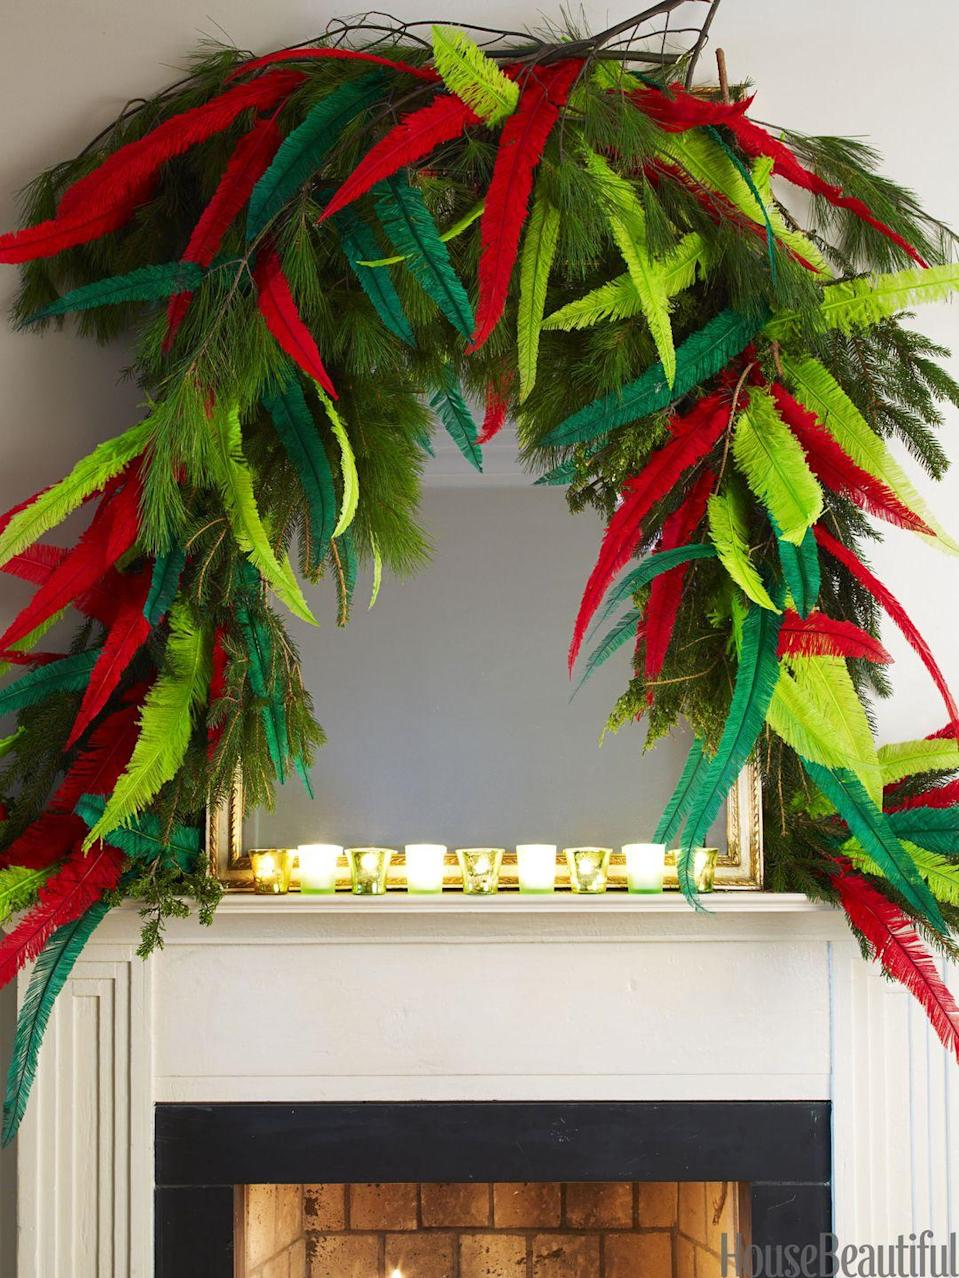 "<p>Outline a simple mirror in <a href=""https://www.housebeautiful.com/room-decorating/colors/tips/g492/red-and-green-christmas-decorations/"" rel=""nofollow noopener"" target=""_blank"" data-ylk=""slk:Christmas greenery"" class=""link rapid-noclick-resp"">Christmas greenery</a>, then stick in feathers. It's unexpected, but totally statement-making. </p>"